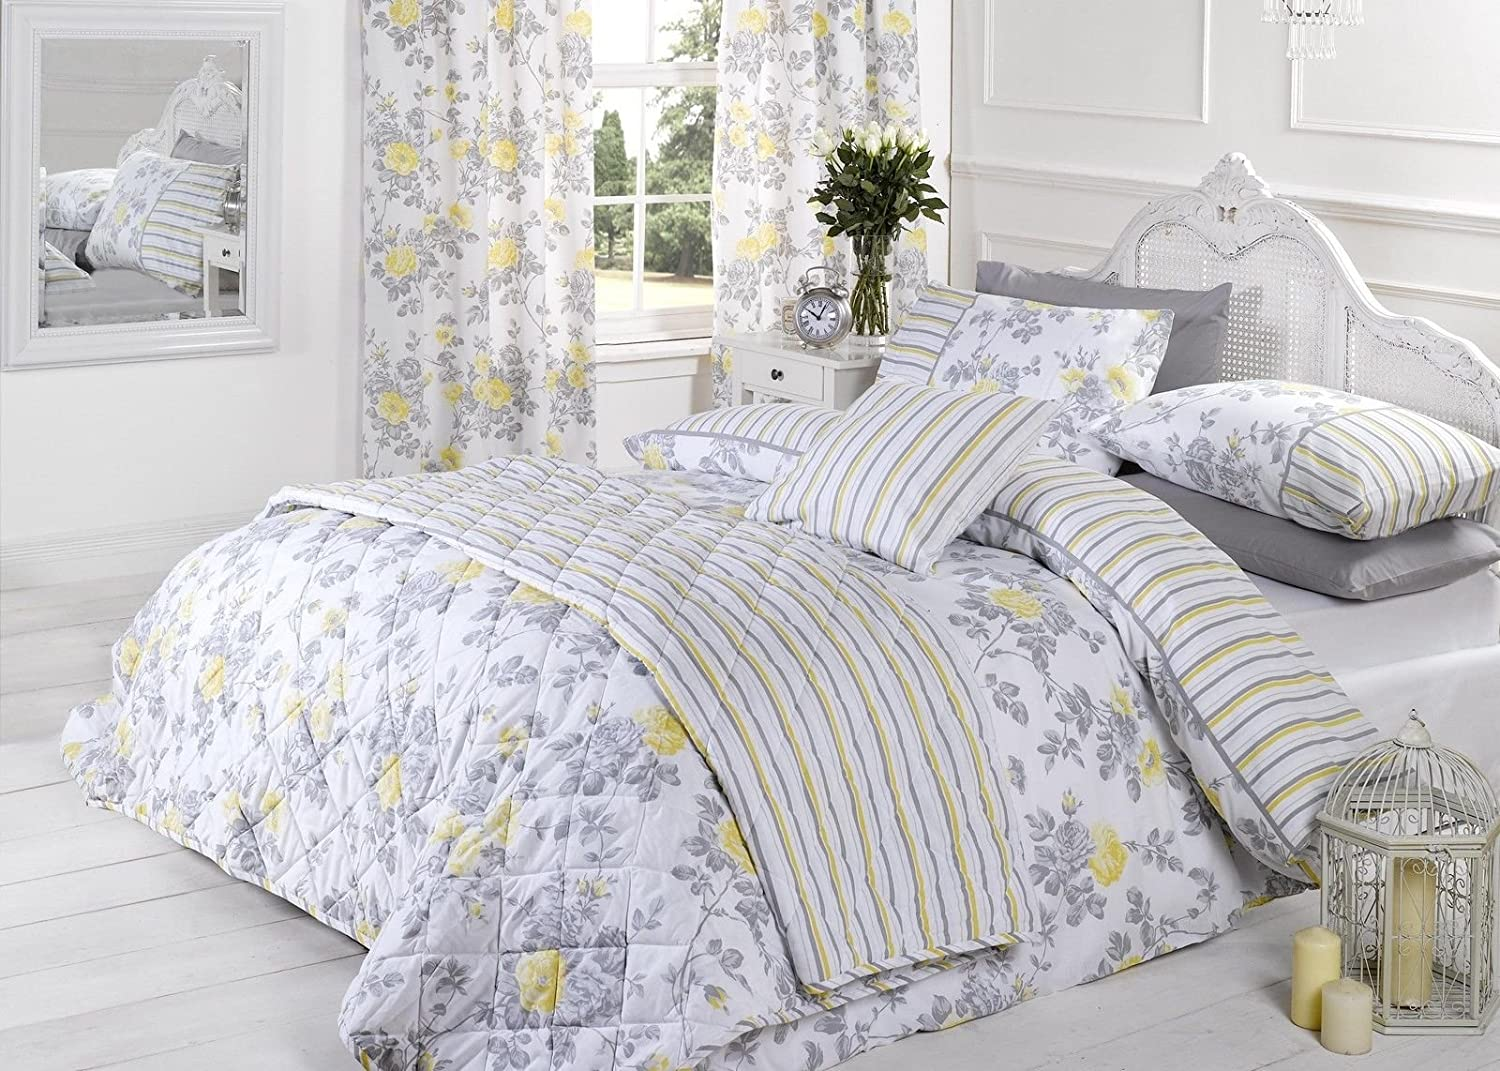 Lauren Rose Floral Flower Lemon Grey White 66 X72 Ready Made Lined Bedroom Curtains Amazon Co Uk Kitchen Home